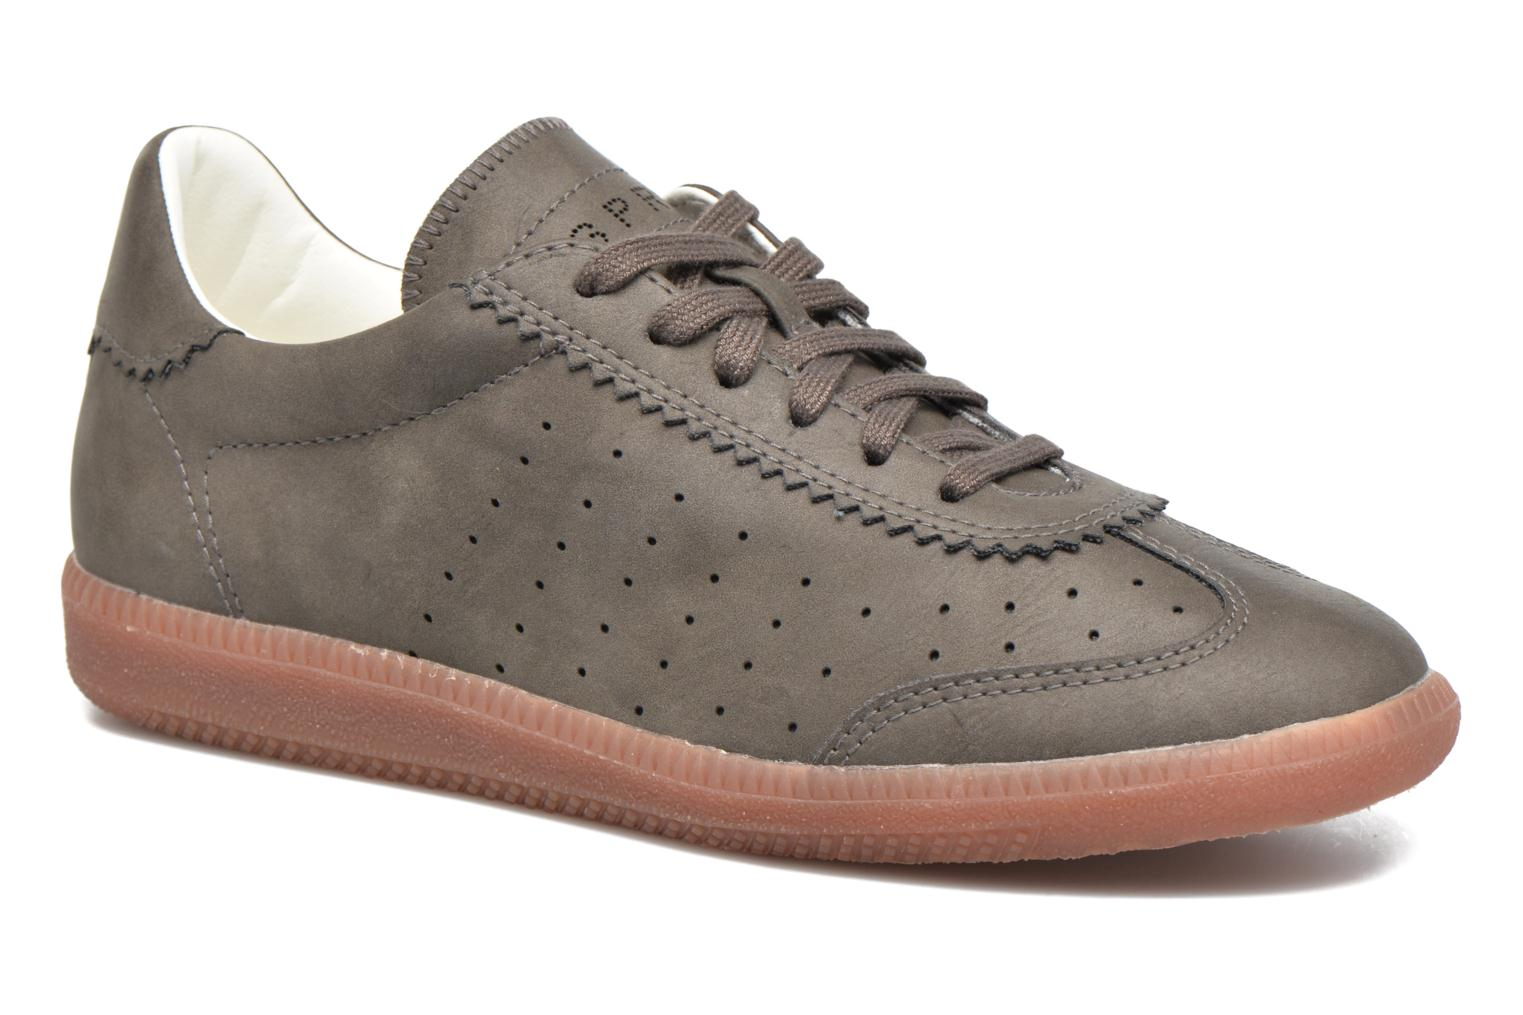 Sneakers Trainee Lace Up by Esprit